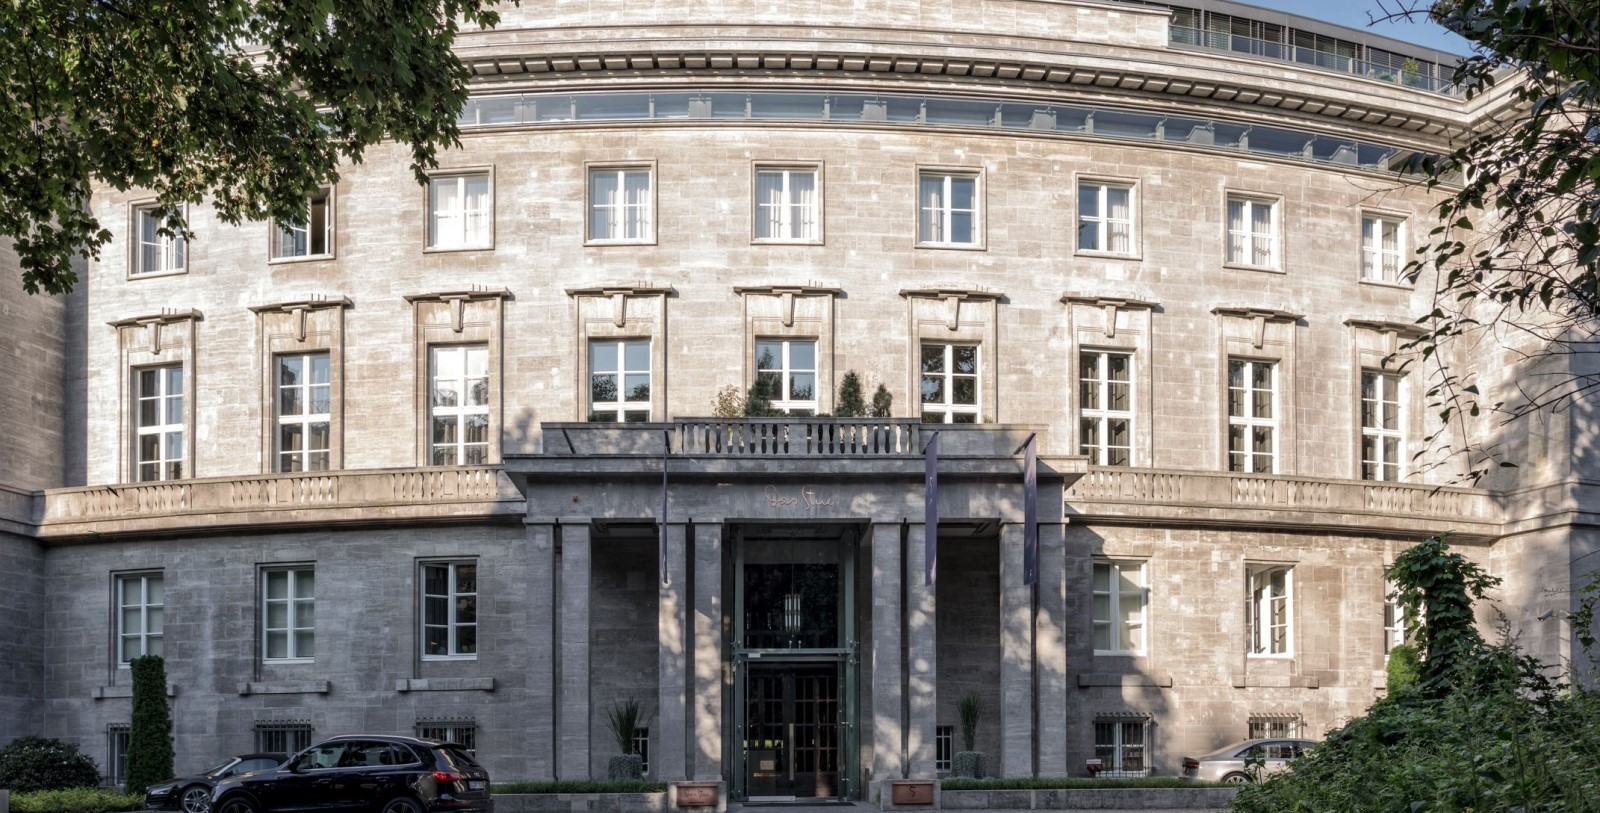 Image of Exterior Hotel SO/ Berlin Das Stue, 1938, Member of Historic Hotels Worldwide, in Berlin, Germany, Special Offers, Discounted Rates, Families, Romantic Escape, Honeymoons, Anniversaries, Reunions